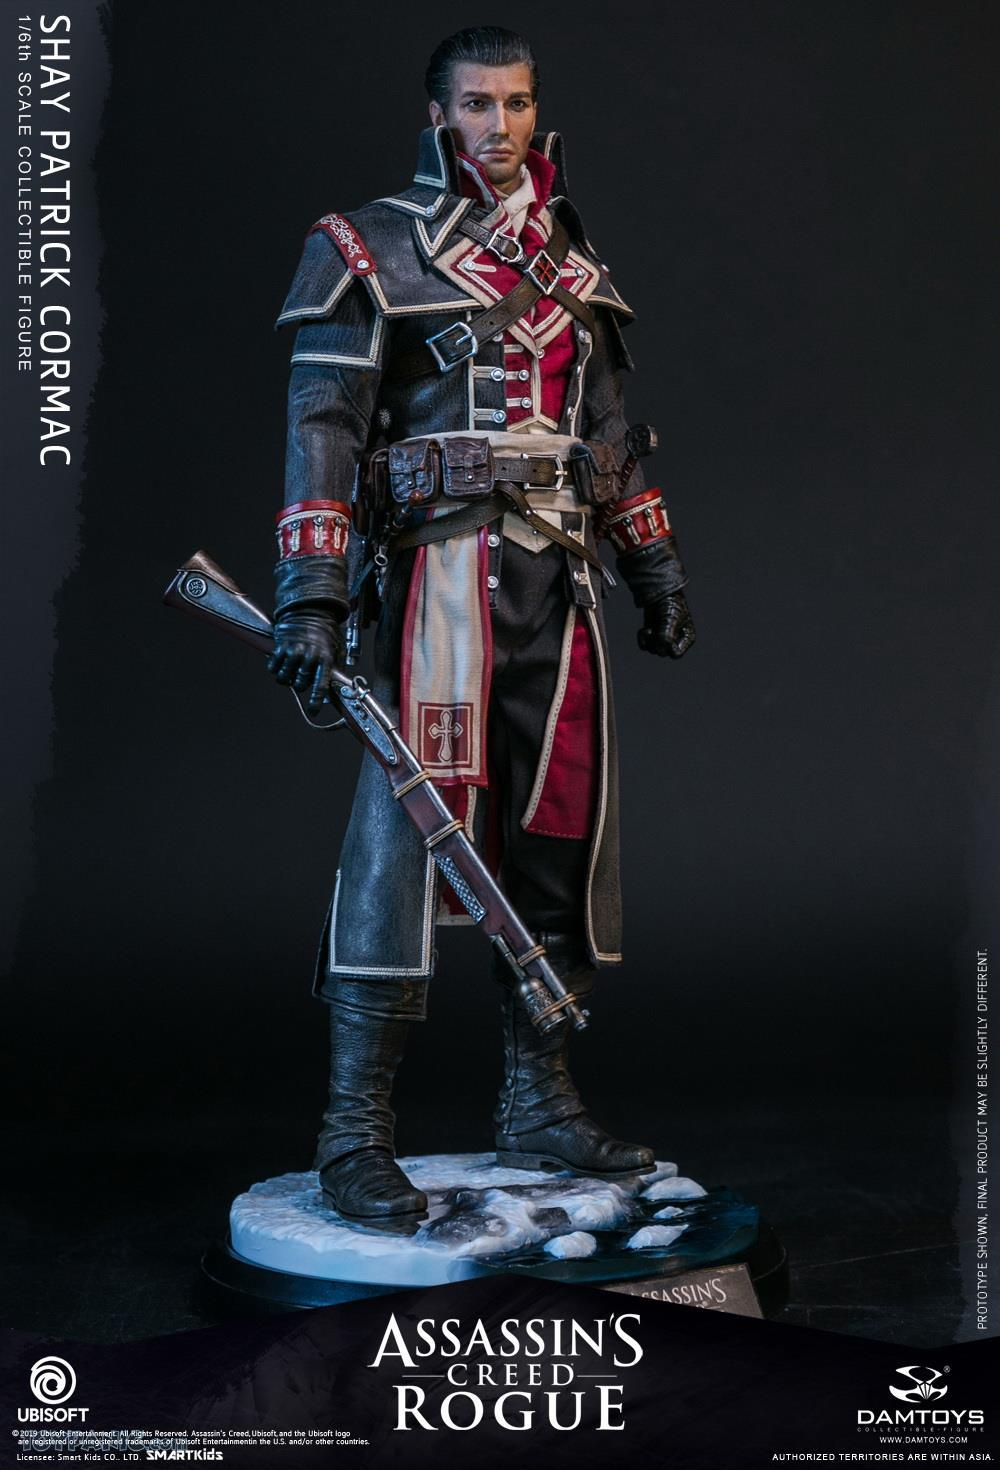 male - NEW PRODUCT: DAMTOYS: Assassins Creed Rogue - 1/6th scale Shay Patrick Cormac Collectible Figure 82220121